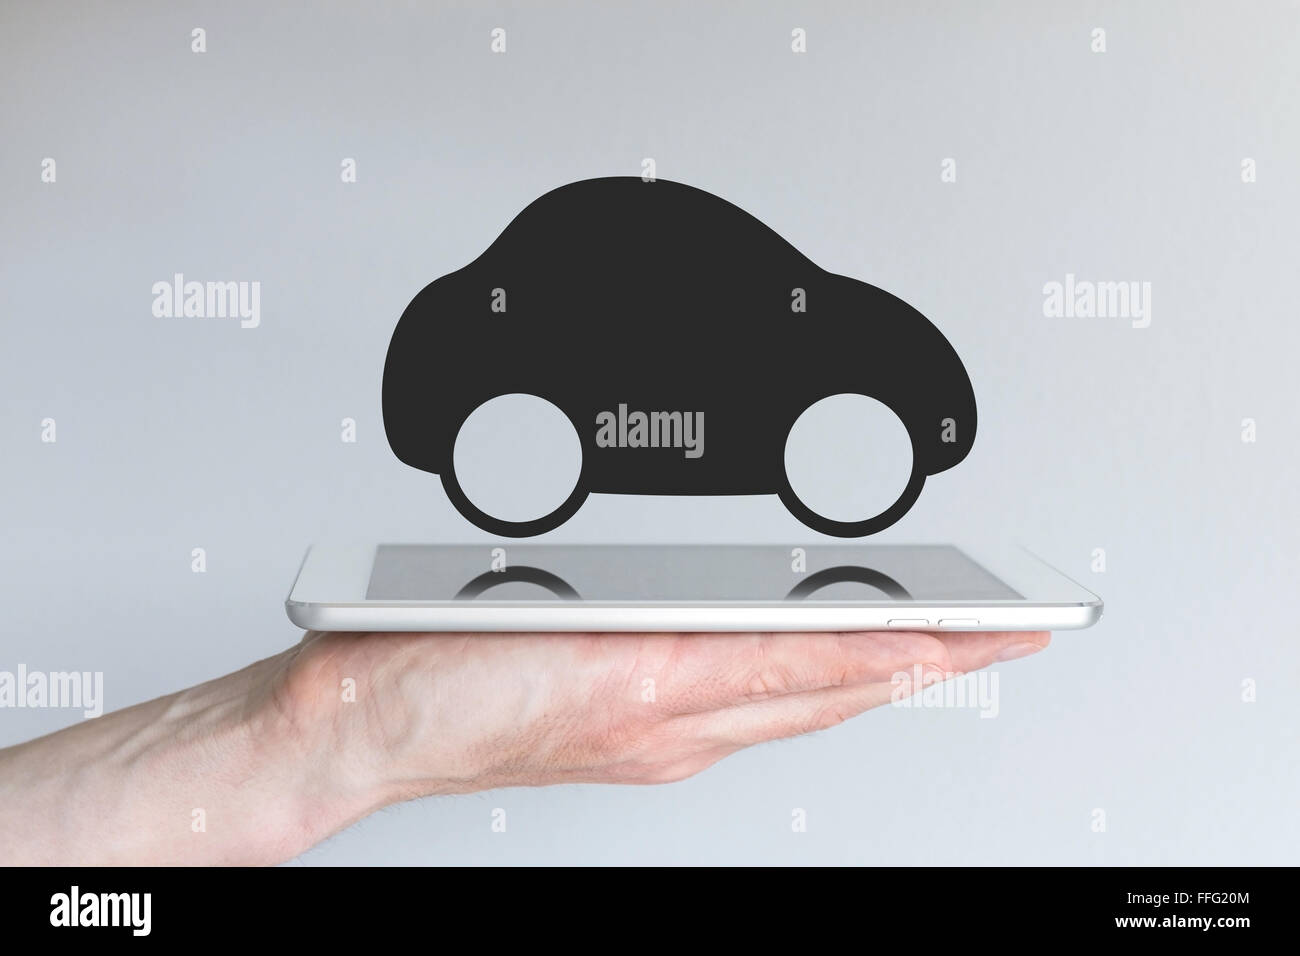 Digital mobility and mobile computing concept. Black car icon as example for disruptive transportation and taxi - Stock Image